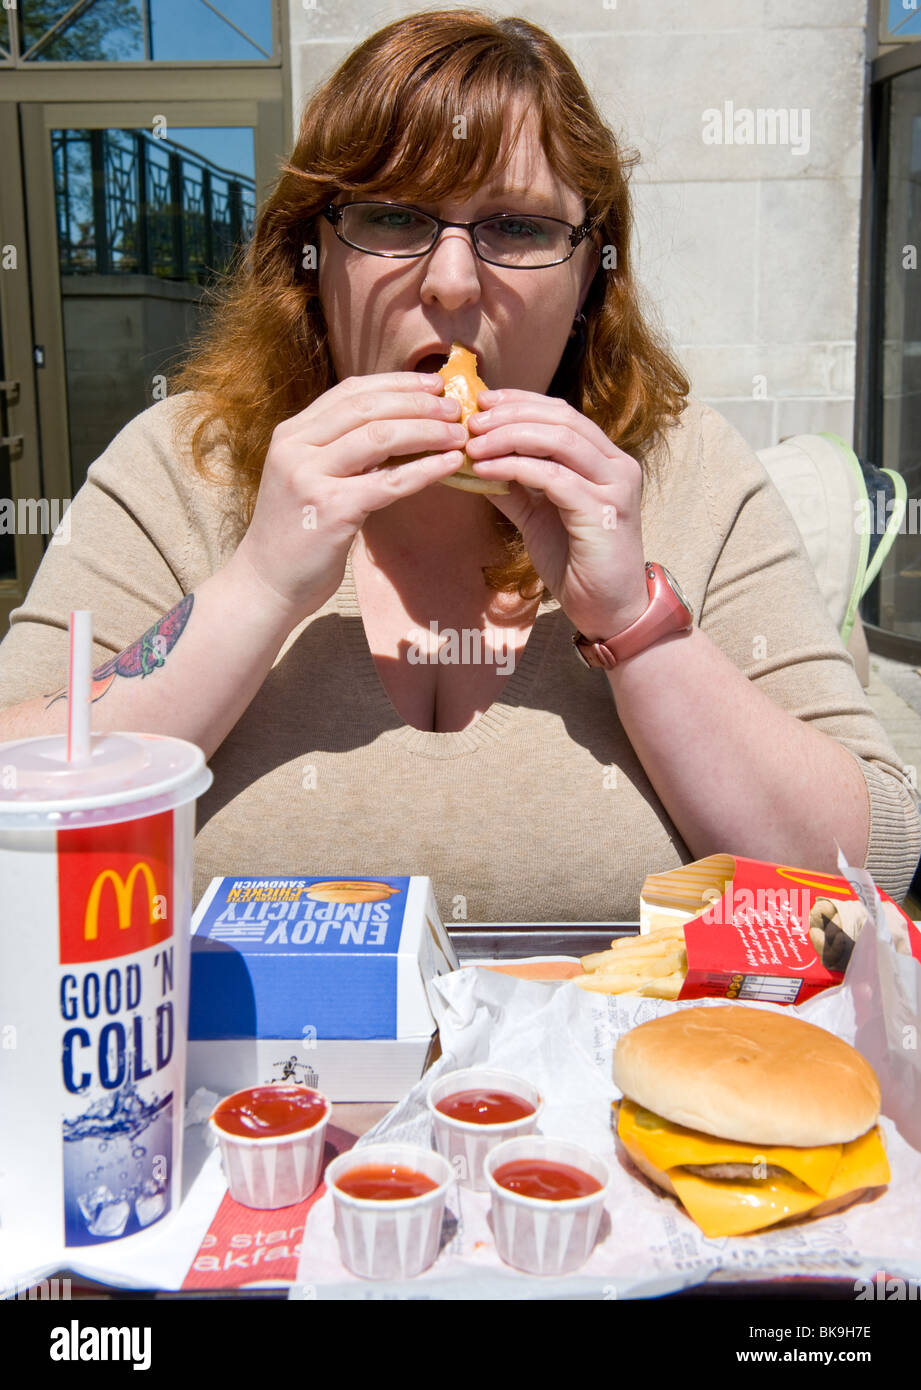 Overweight woman eating McDonald's fast food meal - Stock Image